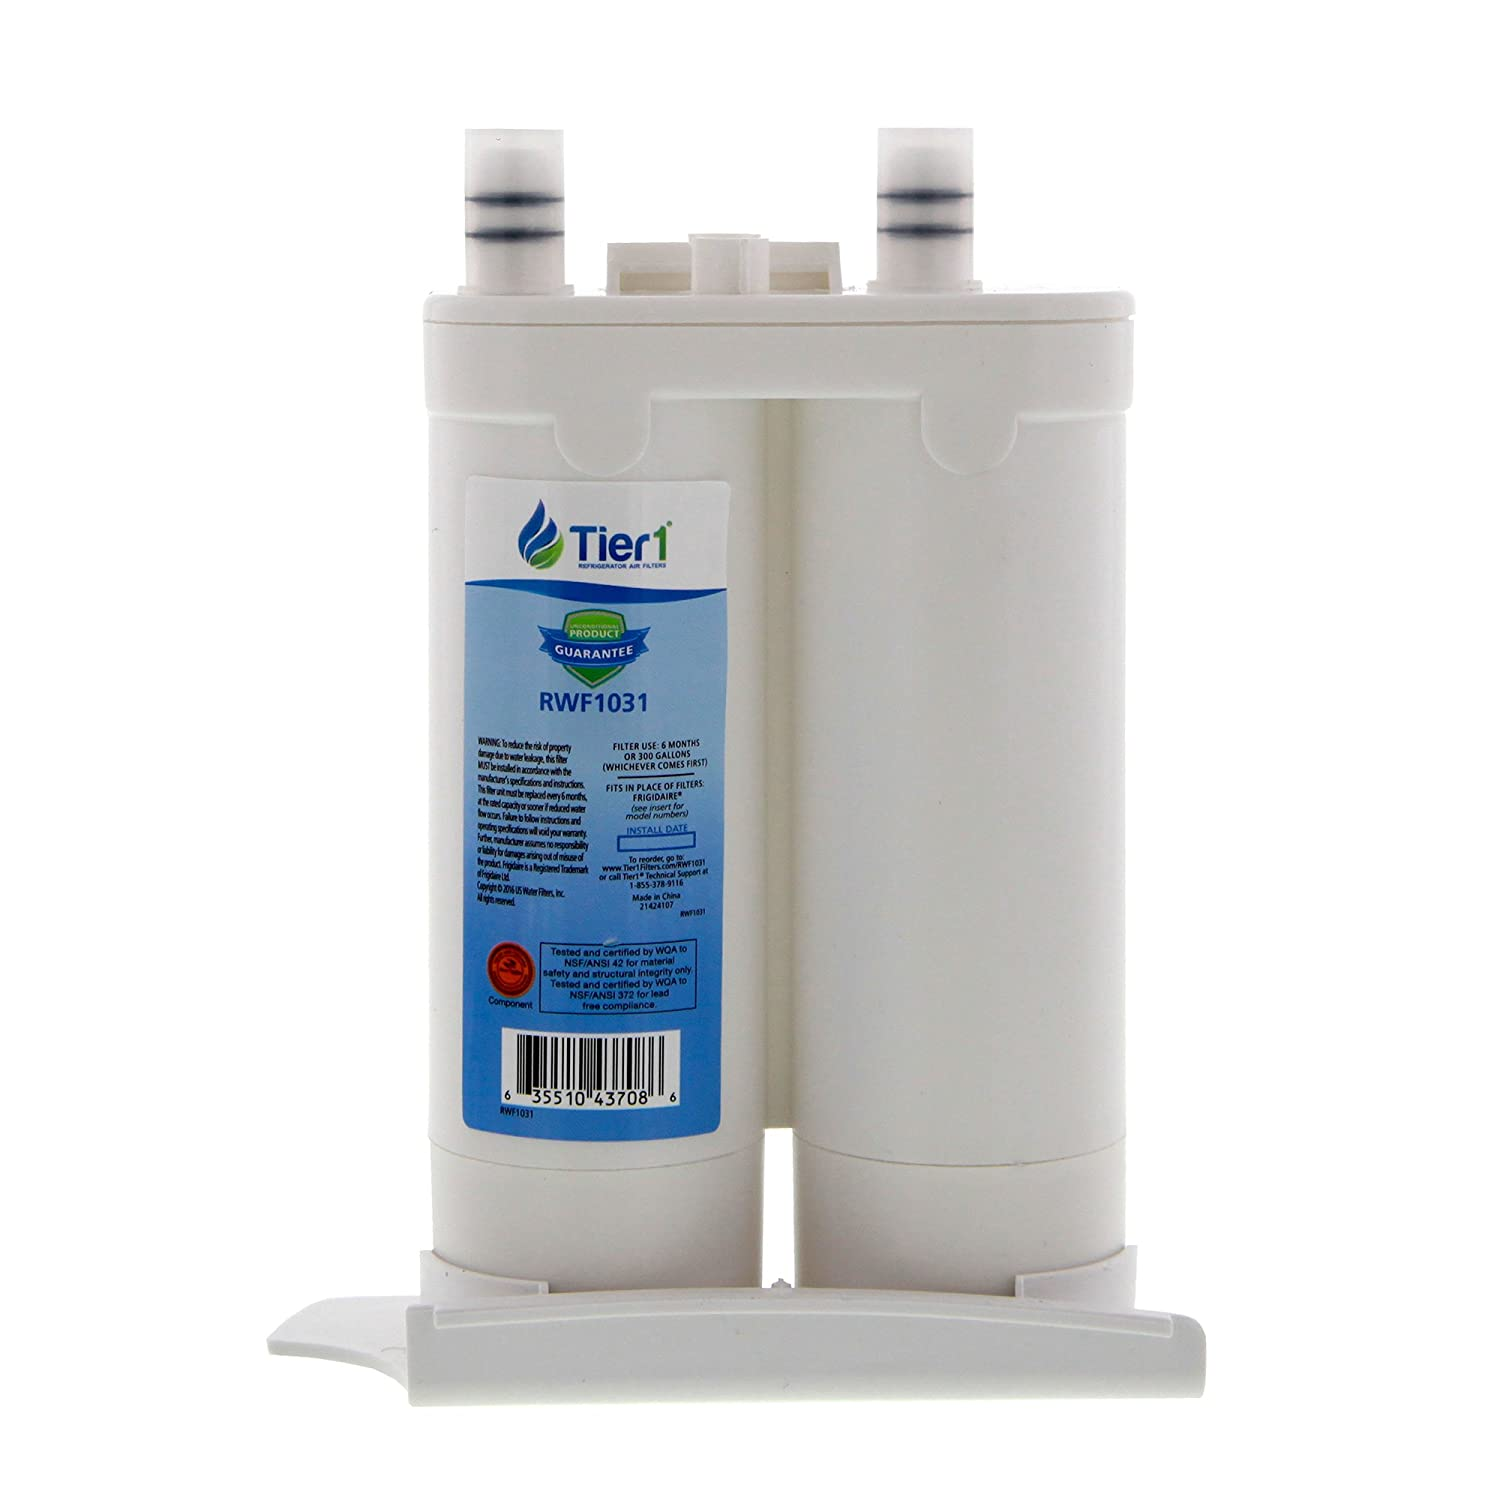 469916 Tier1 Replacement for Frigidaire WF2CB PureSource2 FC 100 Refrigerator Water Filter 3 Pack 469911 NGFC 2000 1004-42-FA